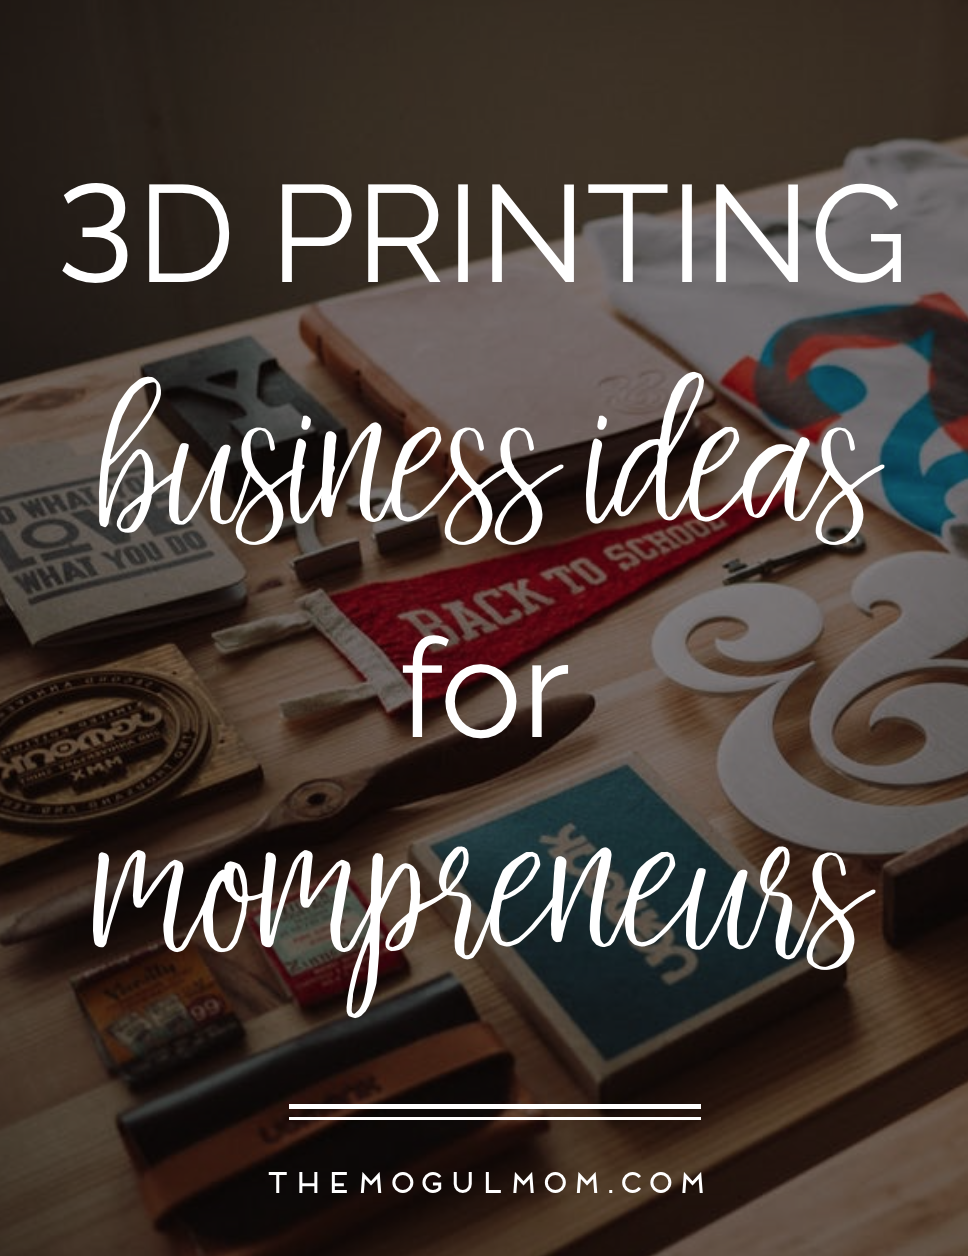 3d printing business ideas for mompreneurs - the mogul mom